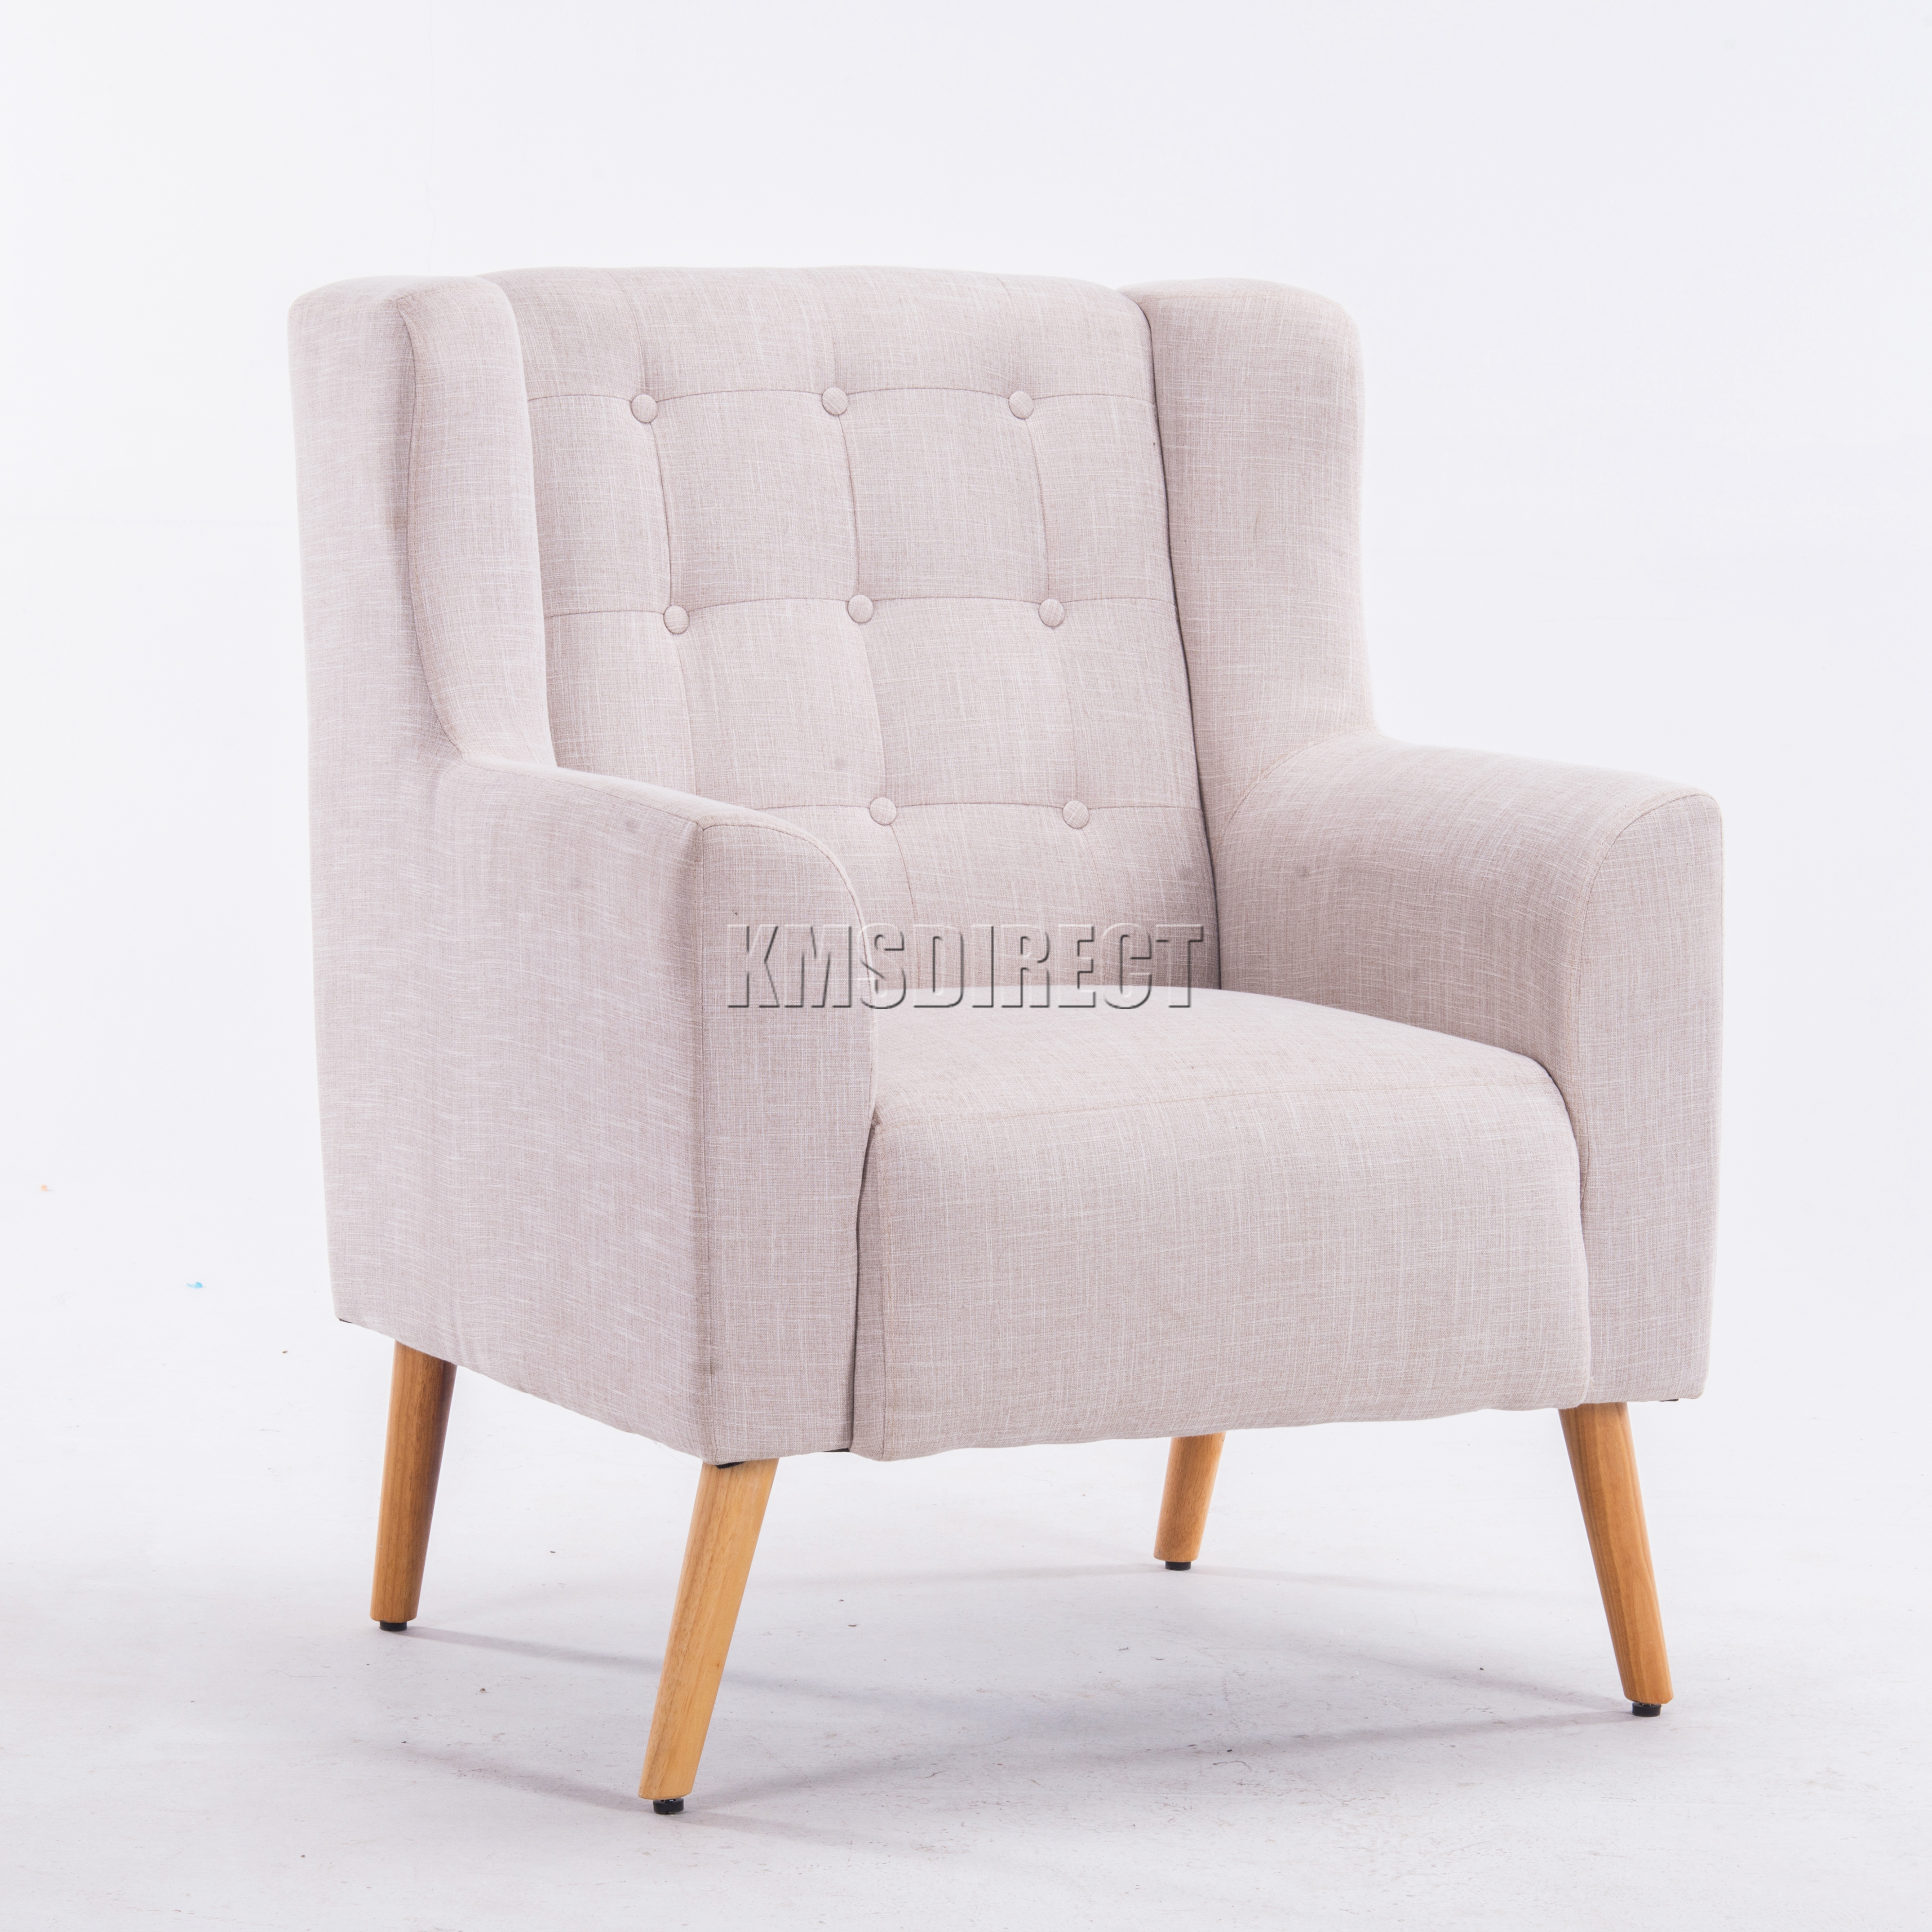 WestWood Linen Fabric Tub Chair Armchair Dining Living Room Lounge ...